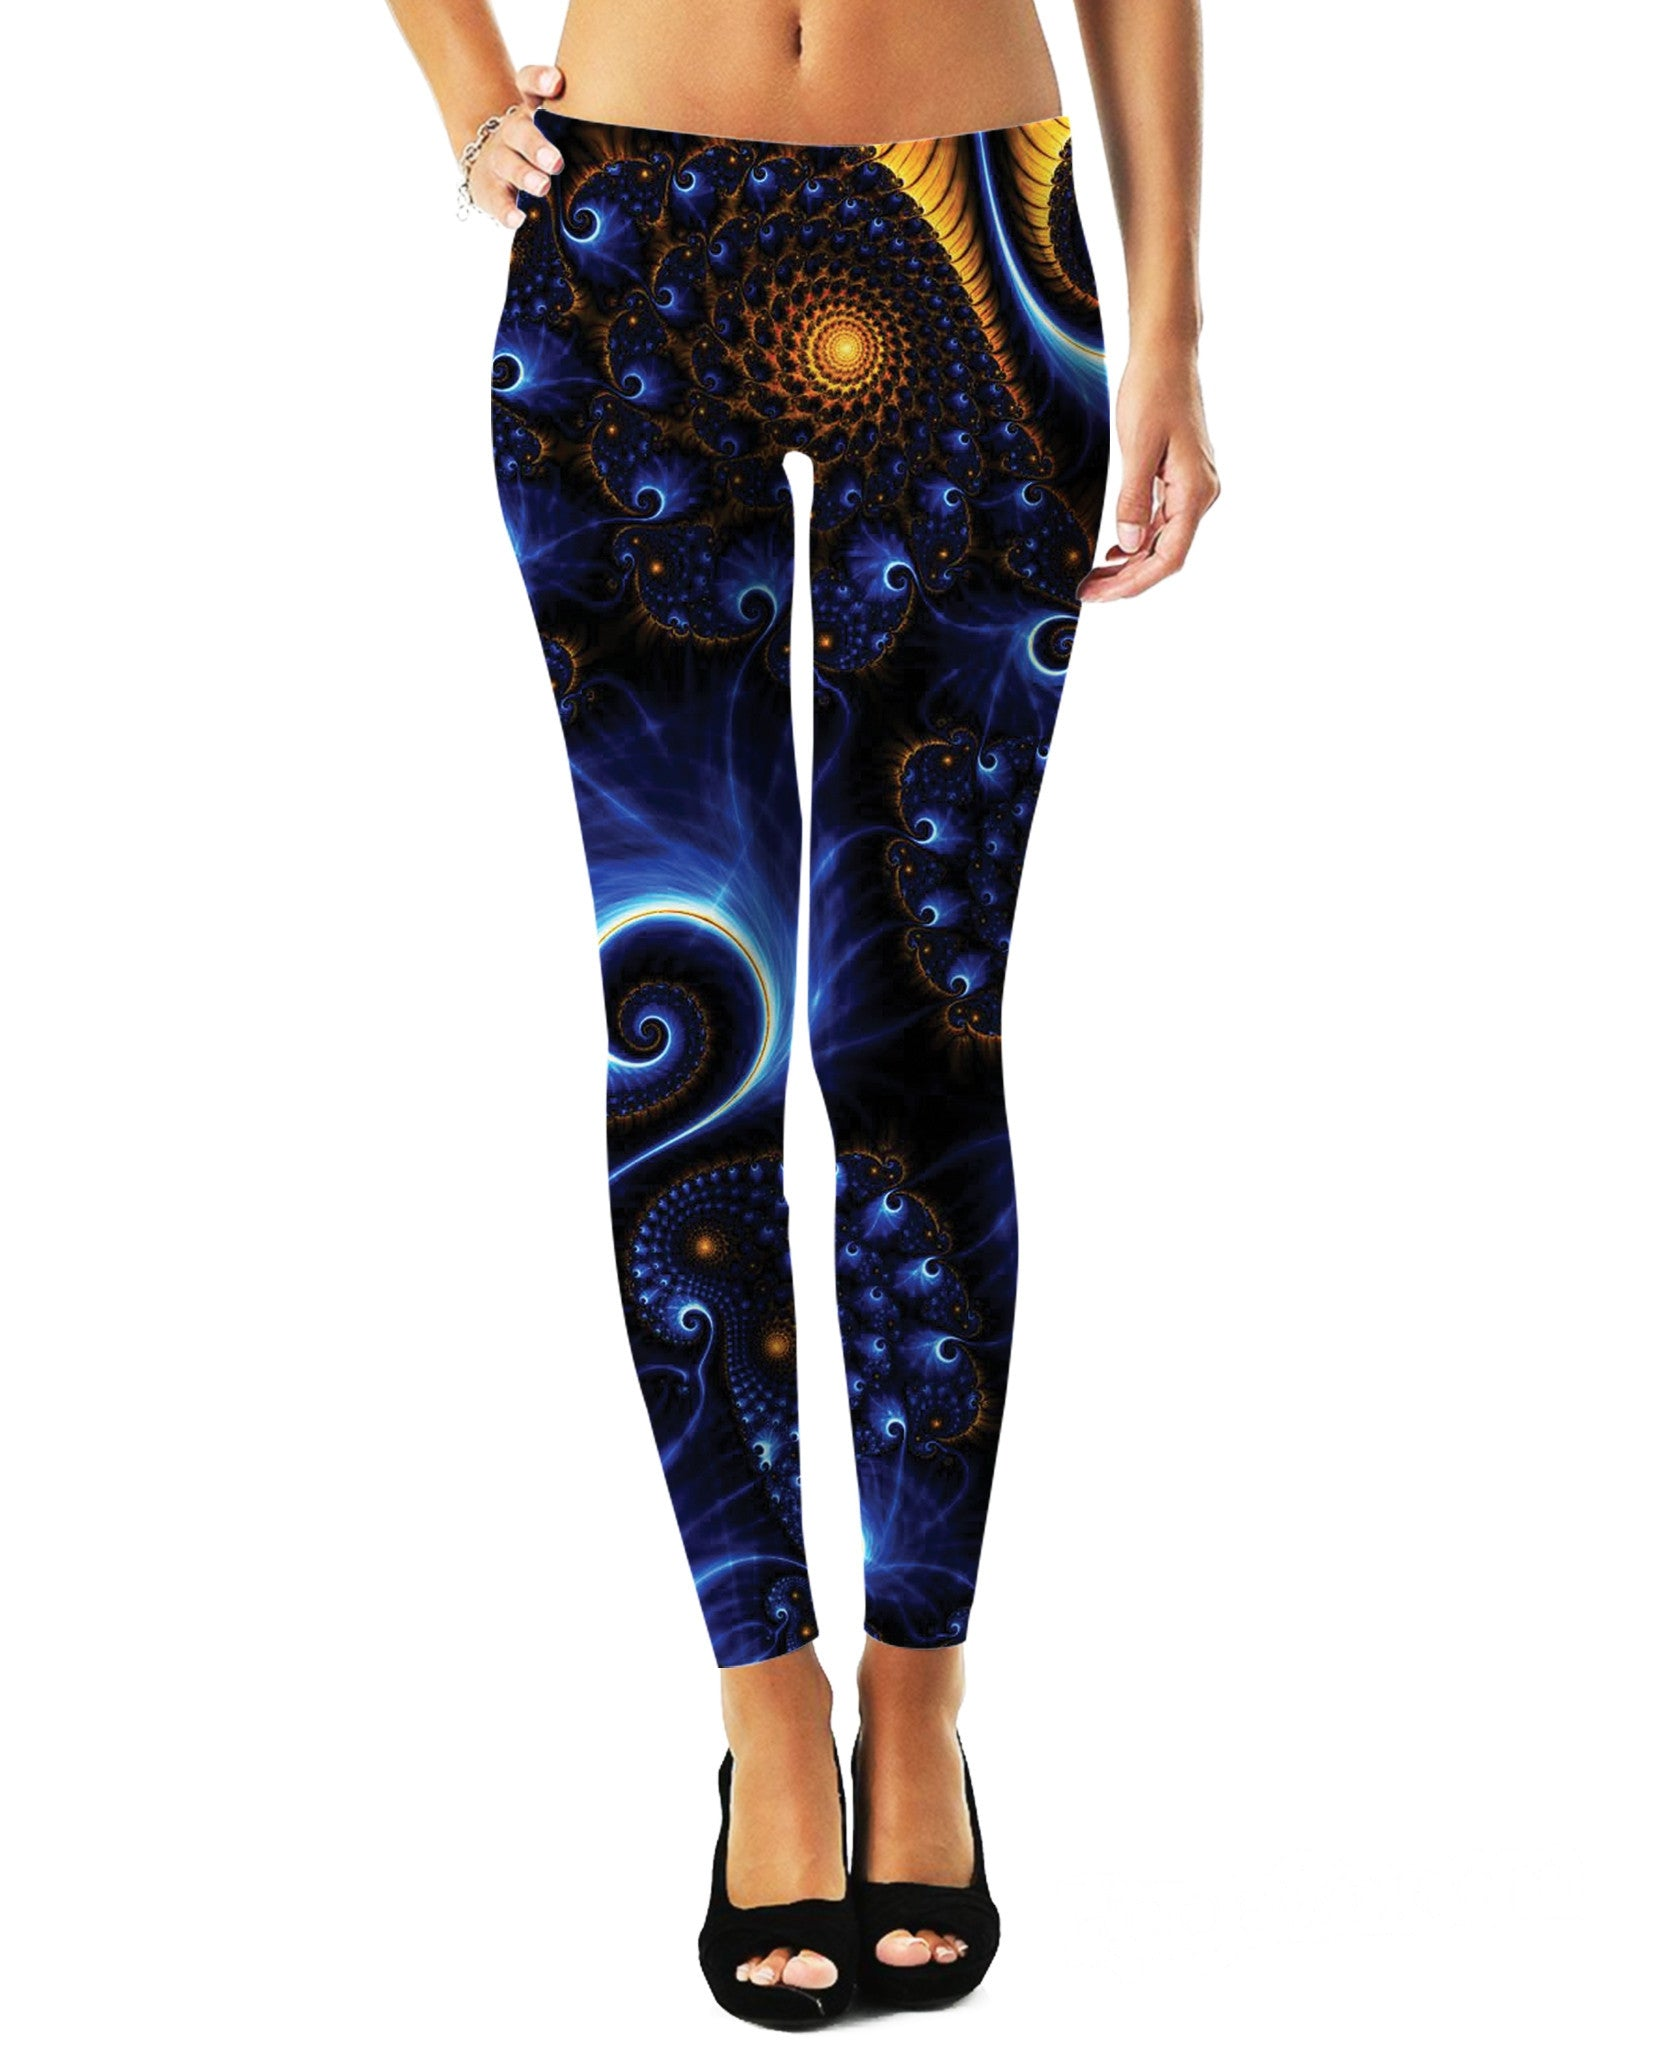 Swirlz Leggings